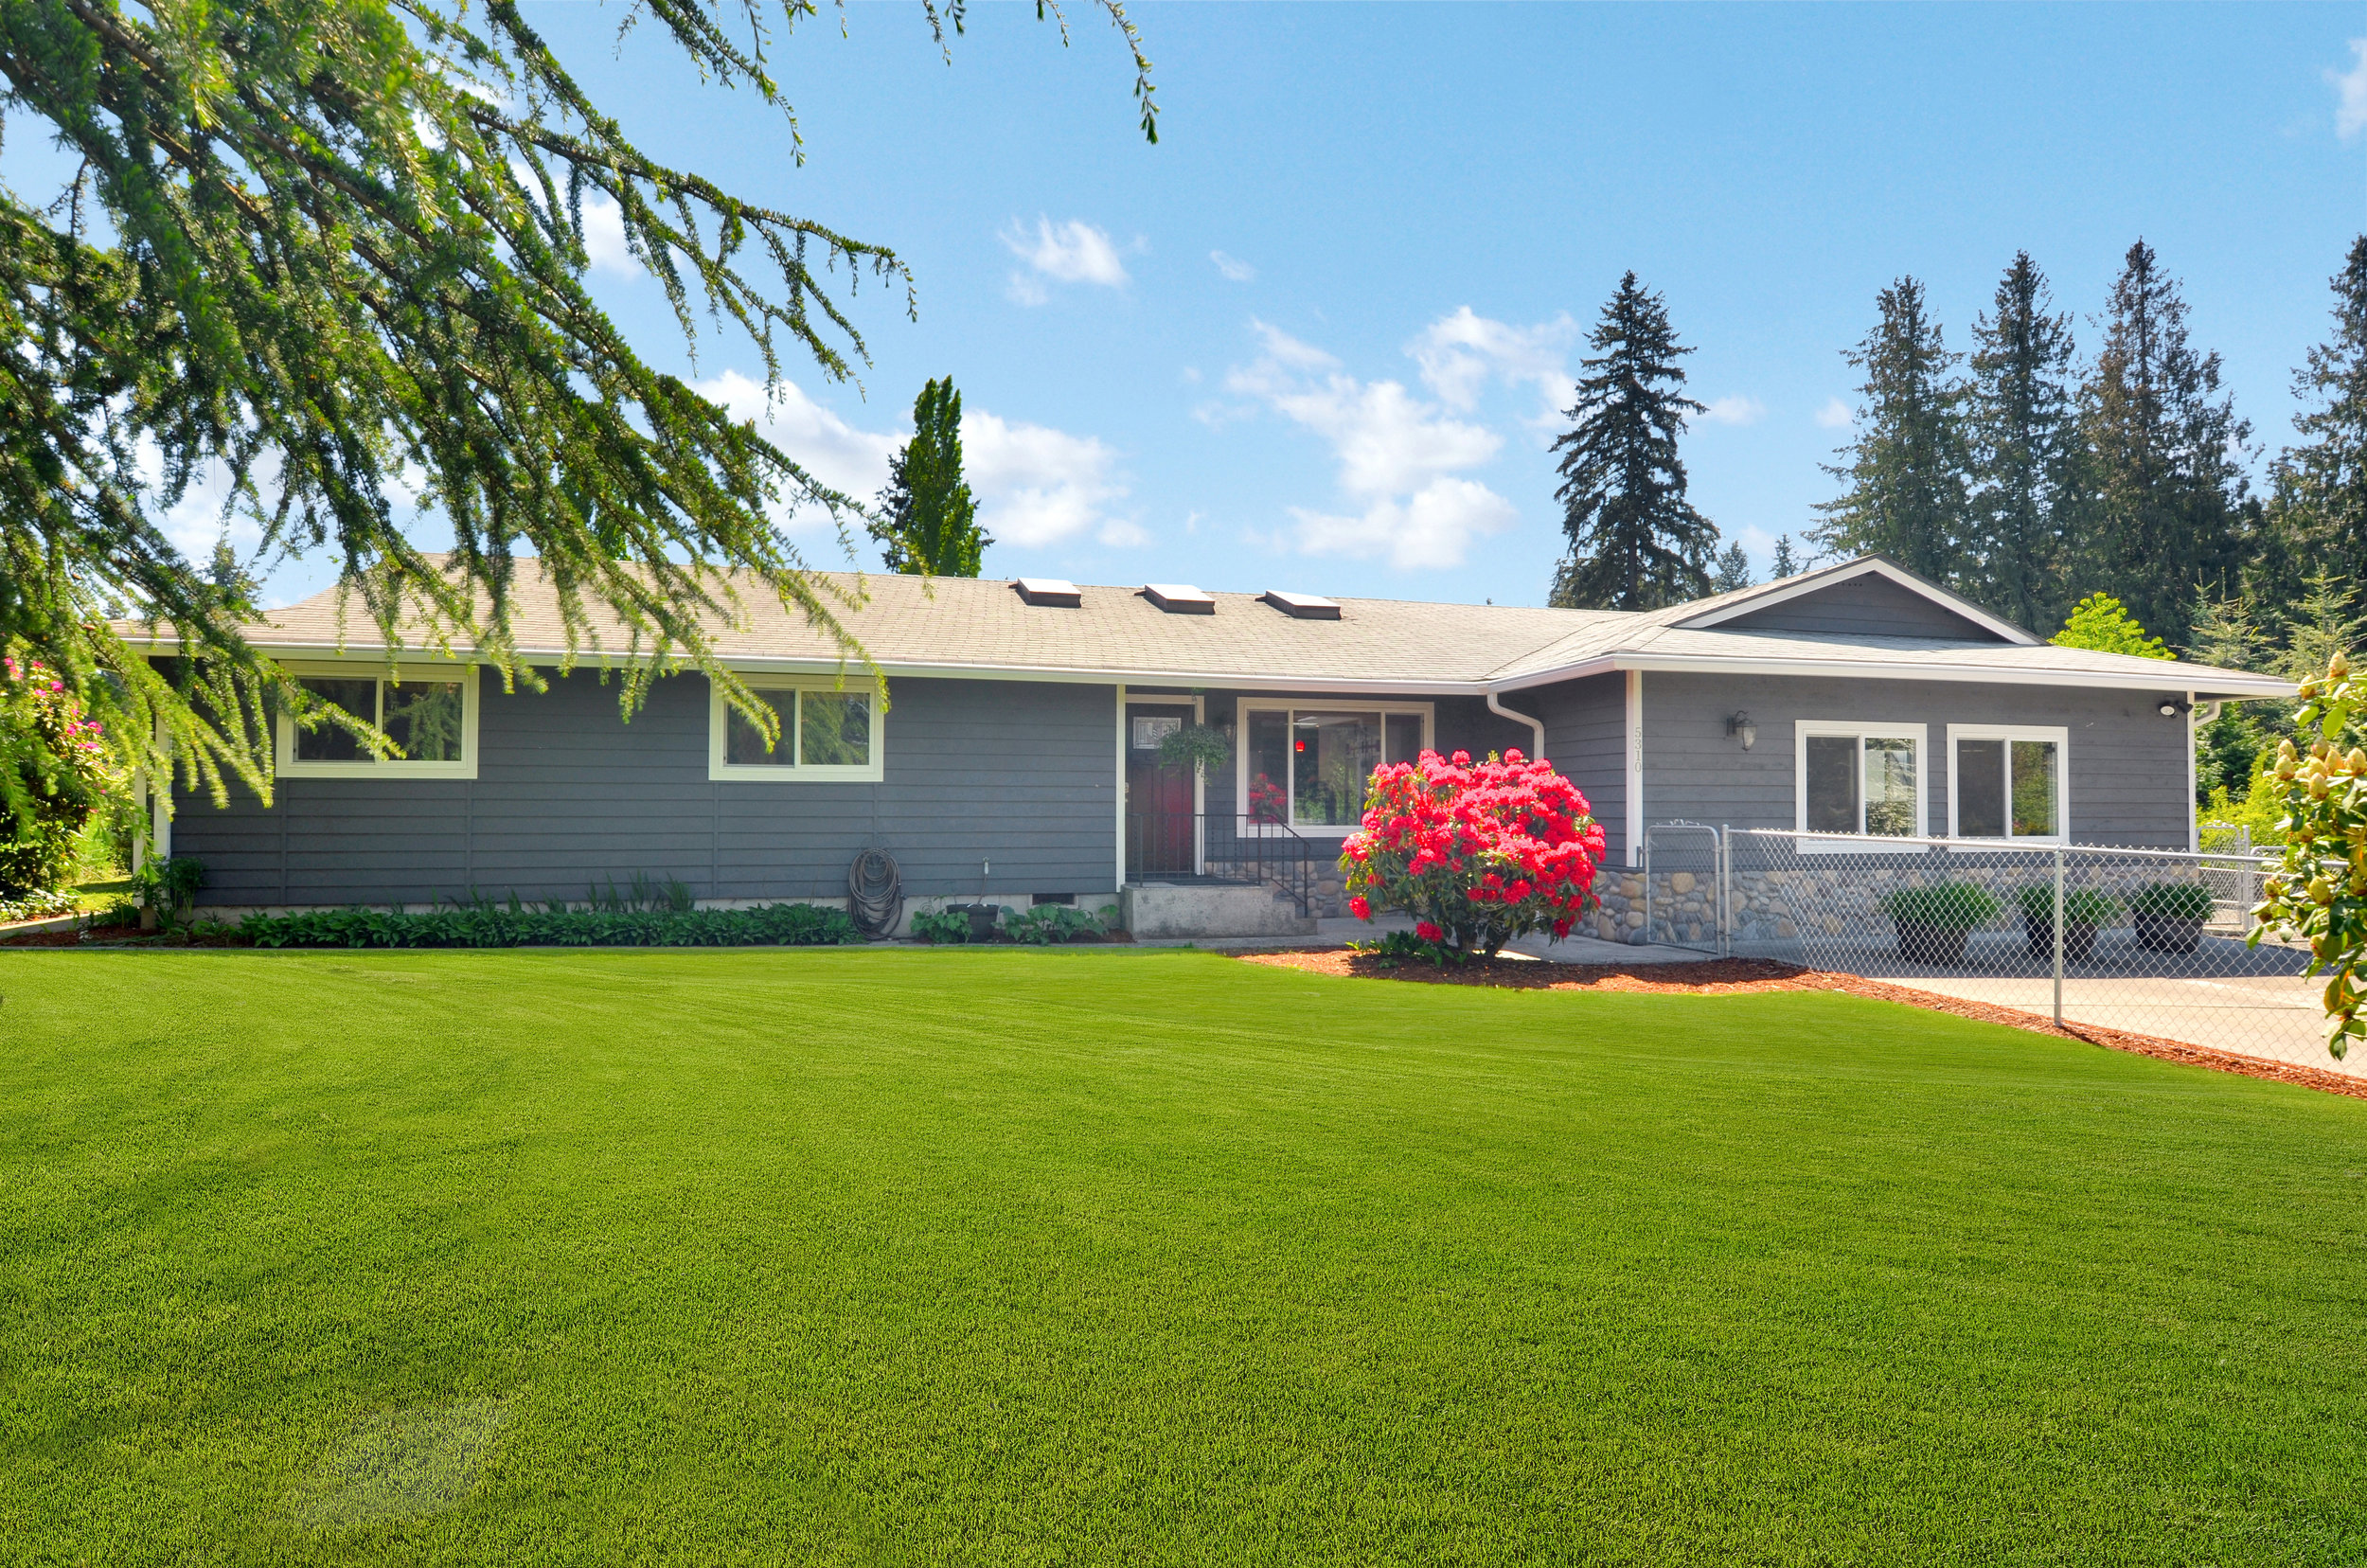 The clean front lawn with beds bordering the house offer a wonderful welcome as you walk to the front door.